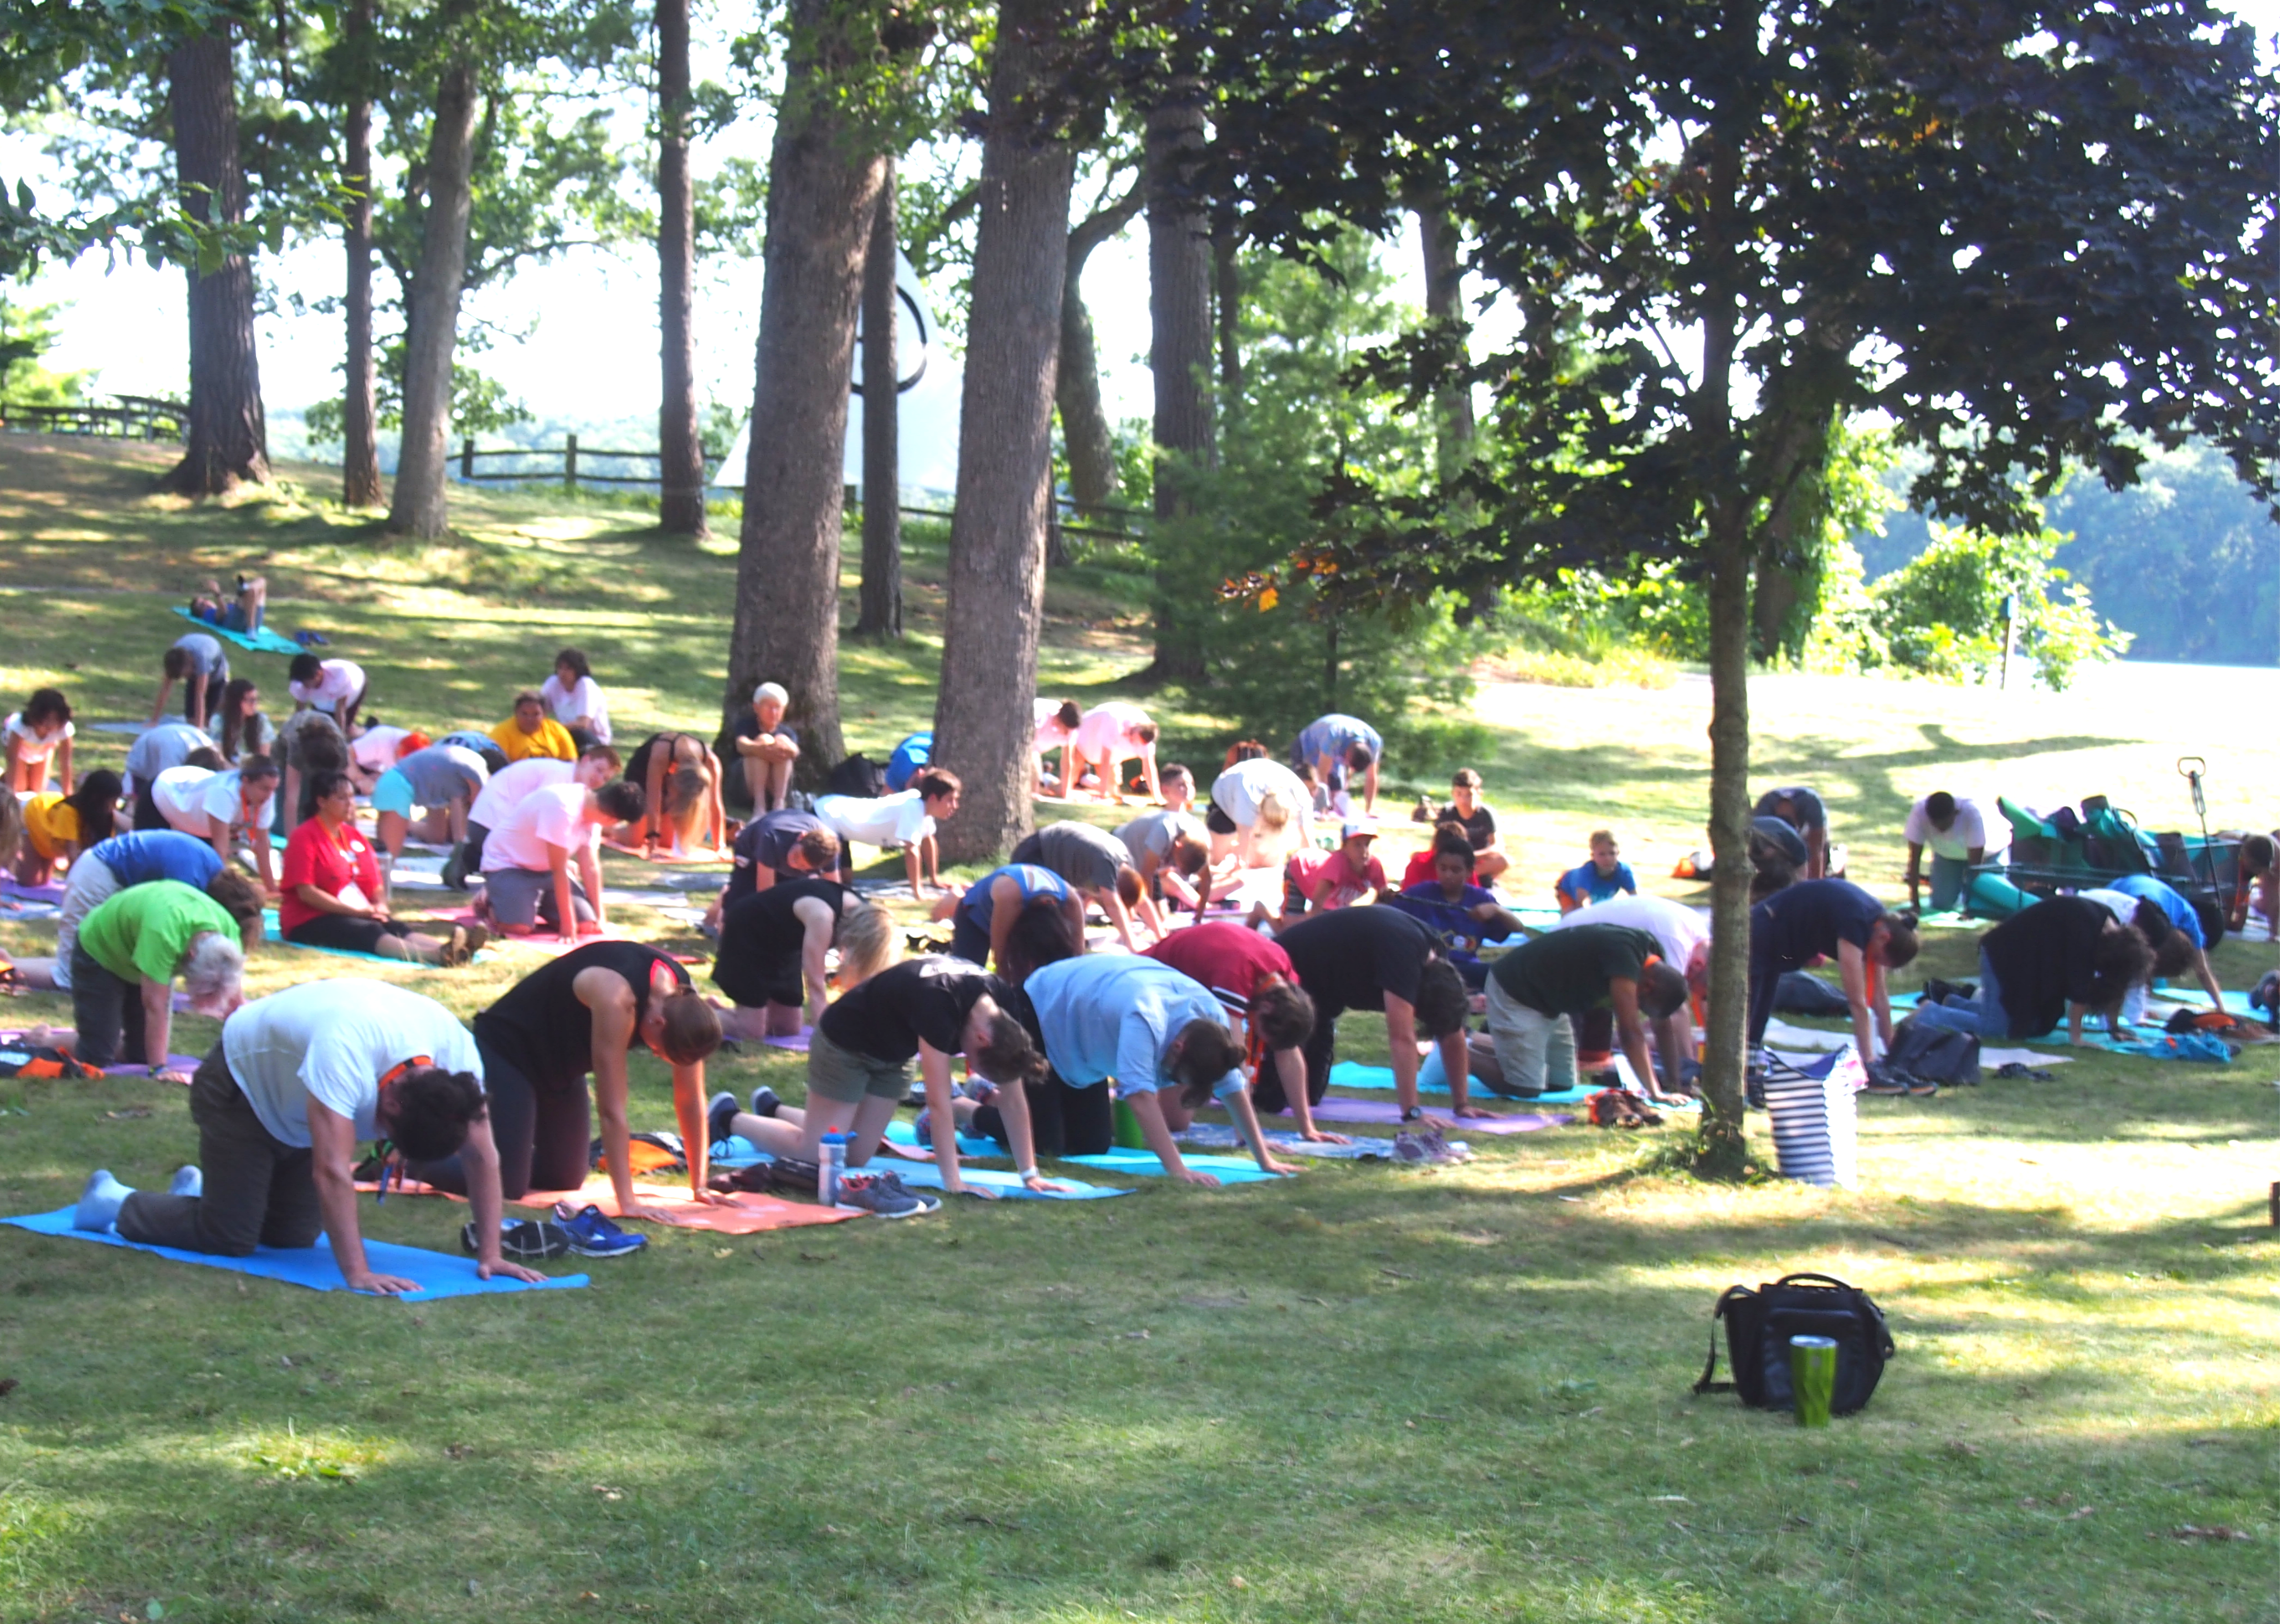 Landscape of campers doing yoga